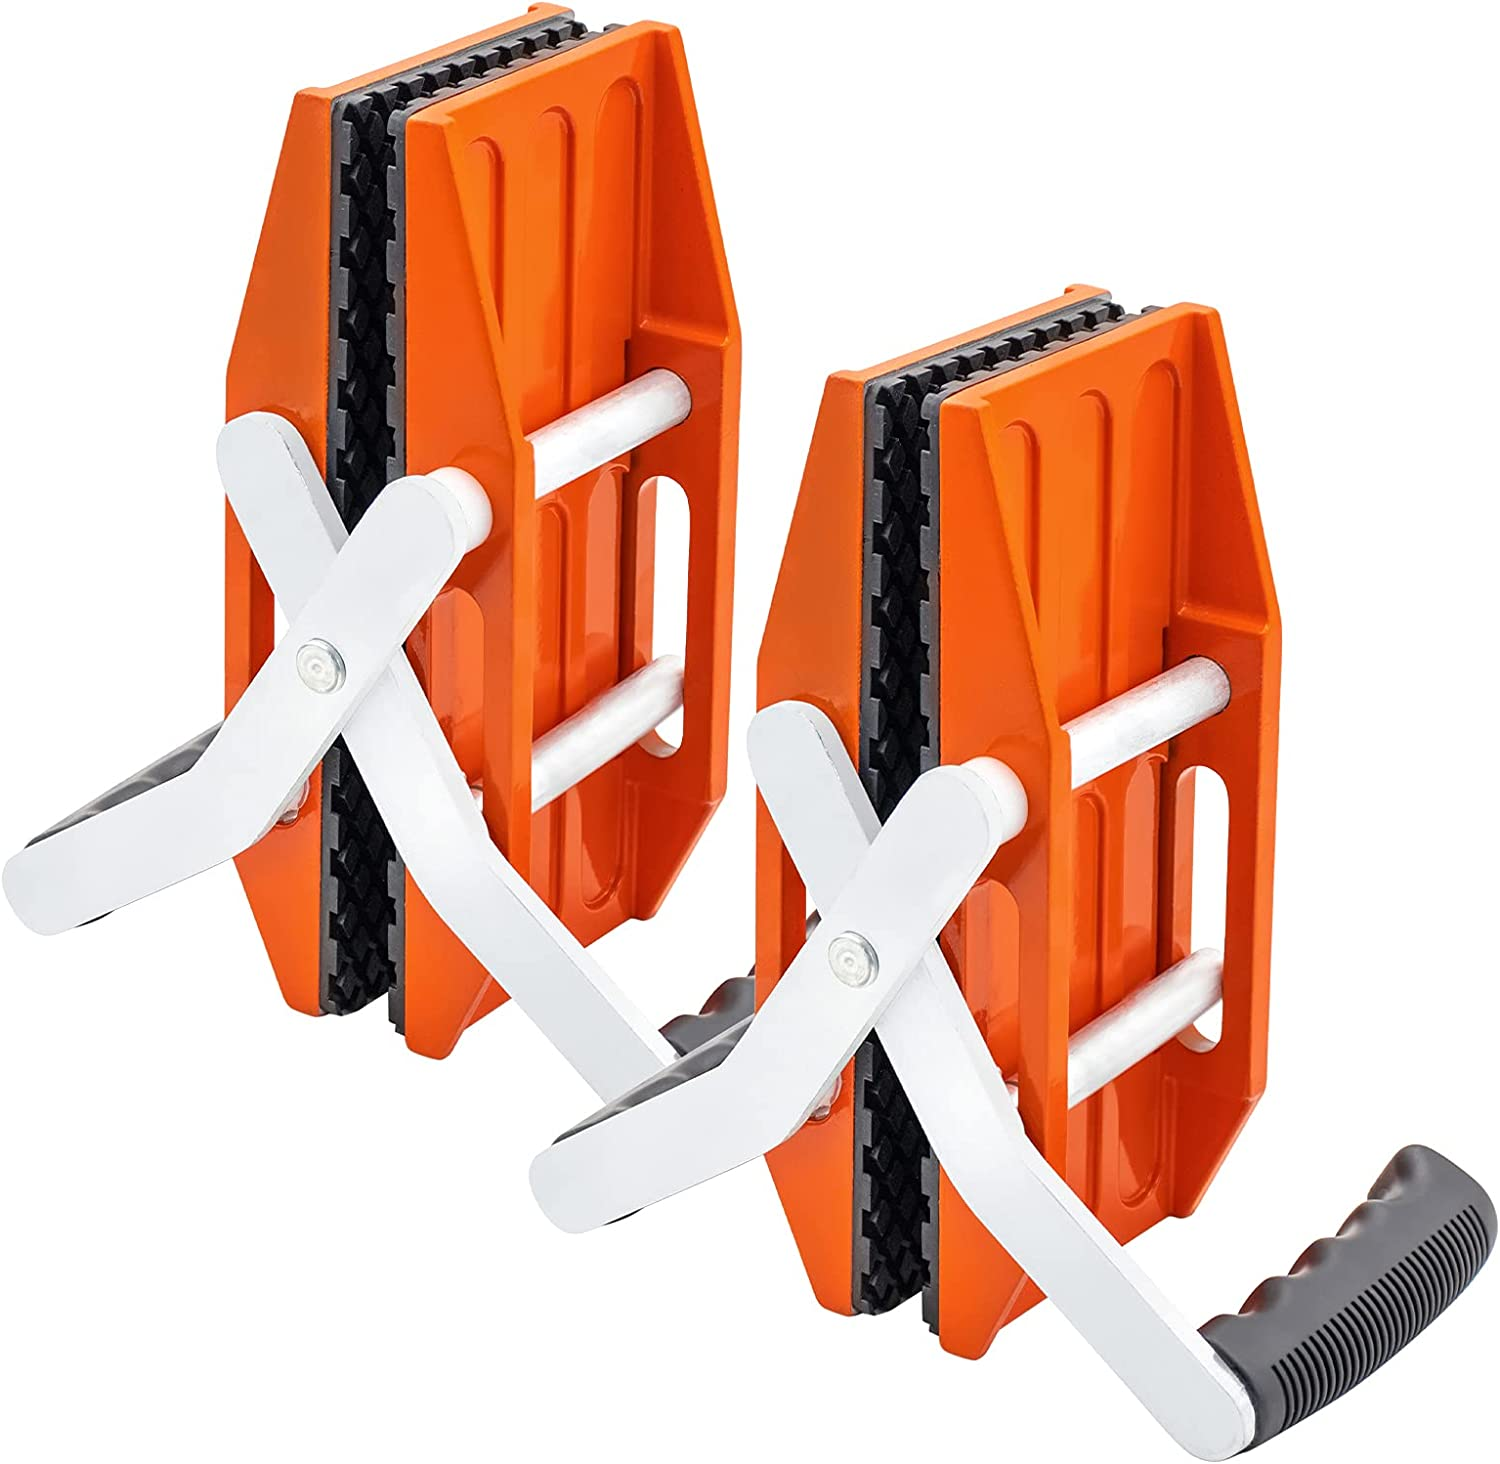 SDRTOR 2PCS Granite Carrying Clamps Carry Lifter Tools Double Ha